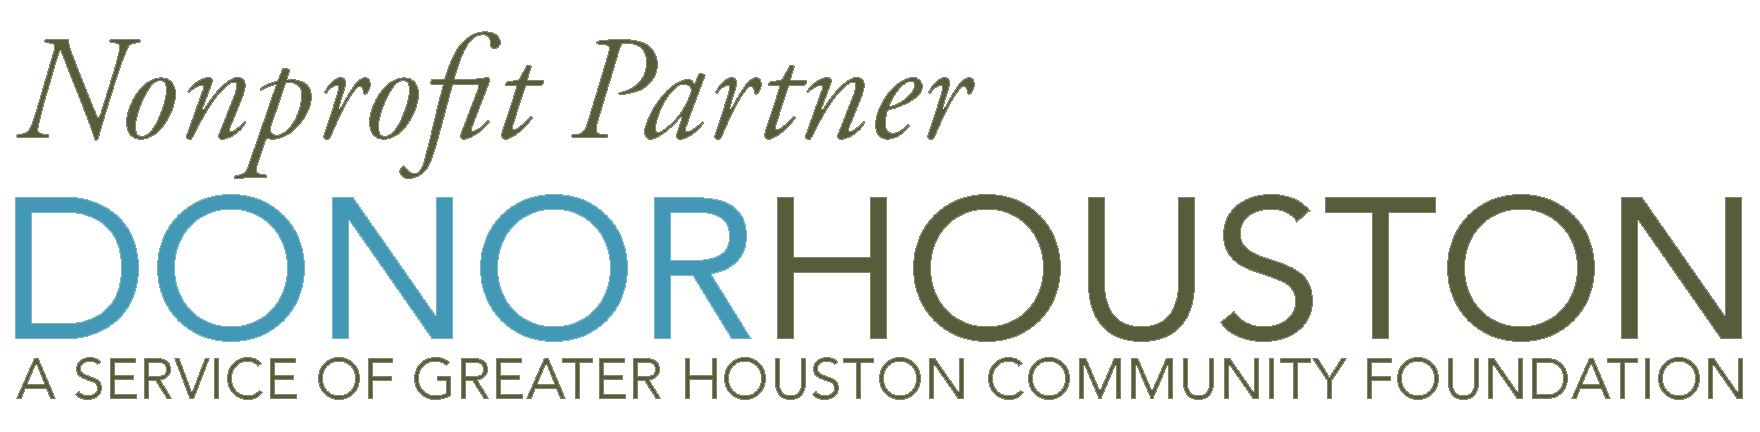 Nonprofit Partner Donor Houston